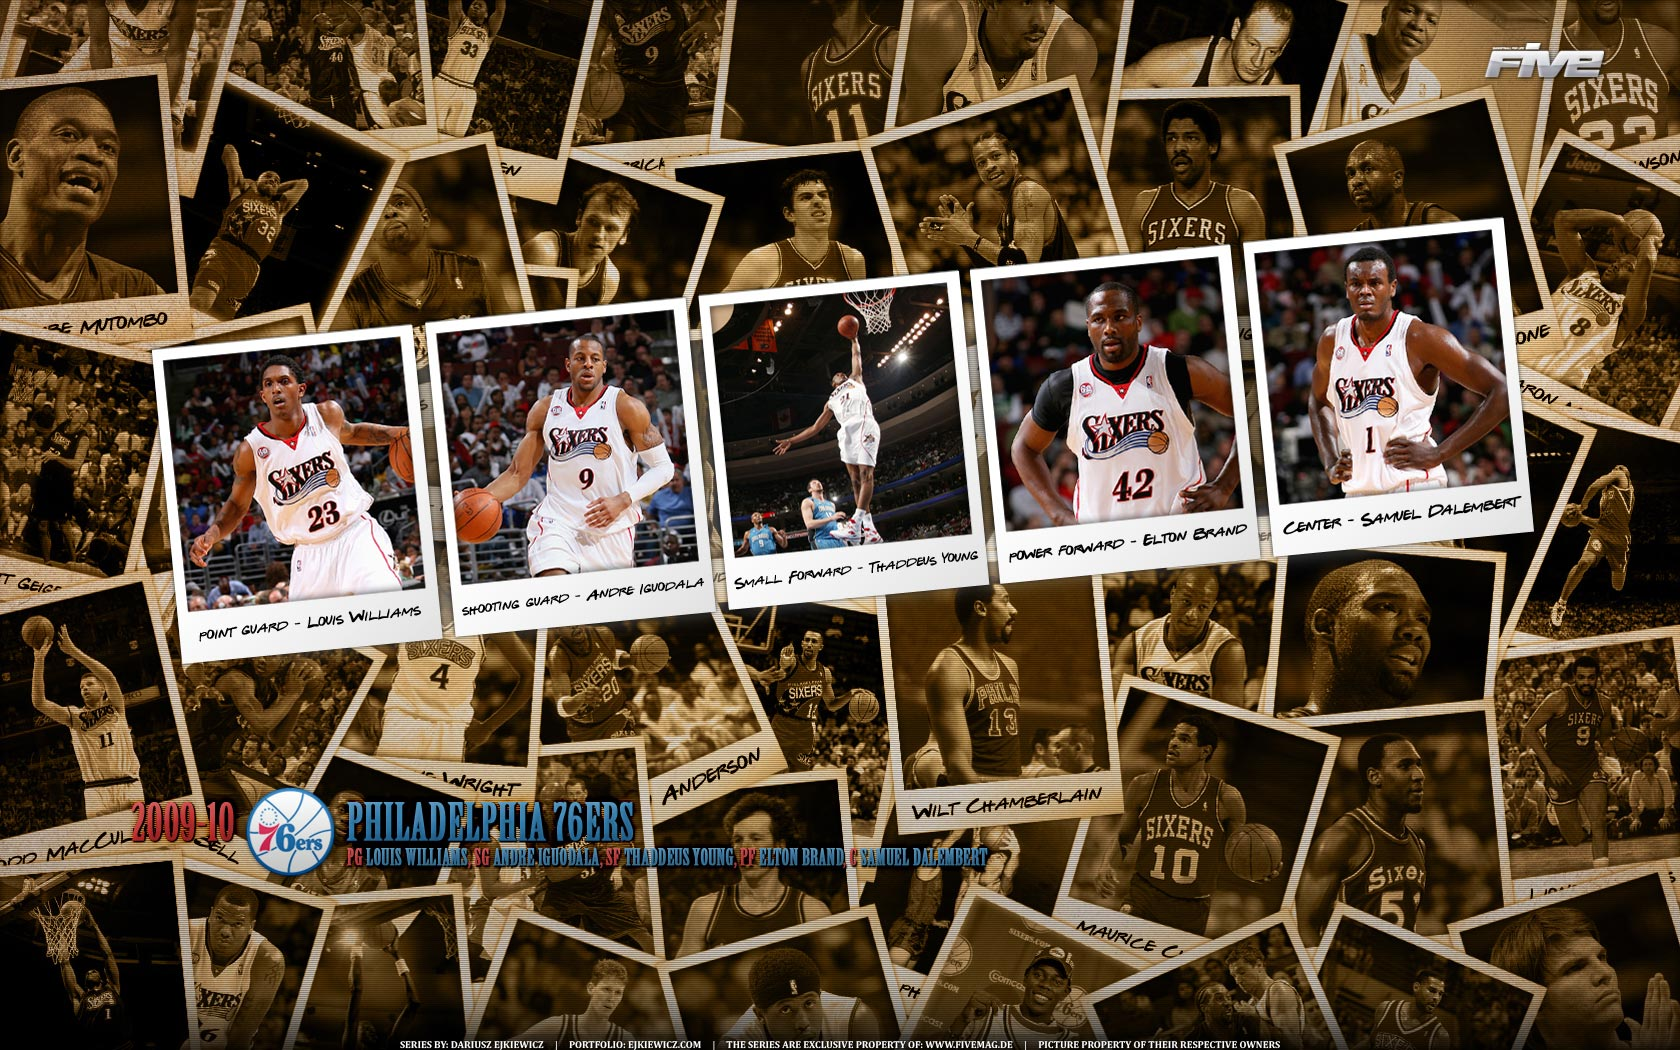 Philadelphia-76ers-2010-Widescreen-Wallpaper-1680x1050.jpg